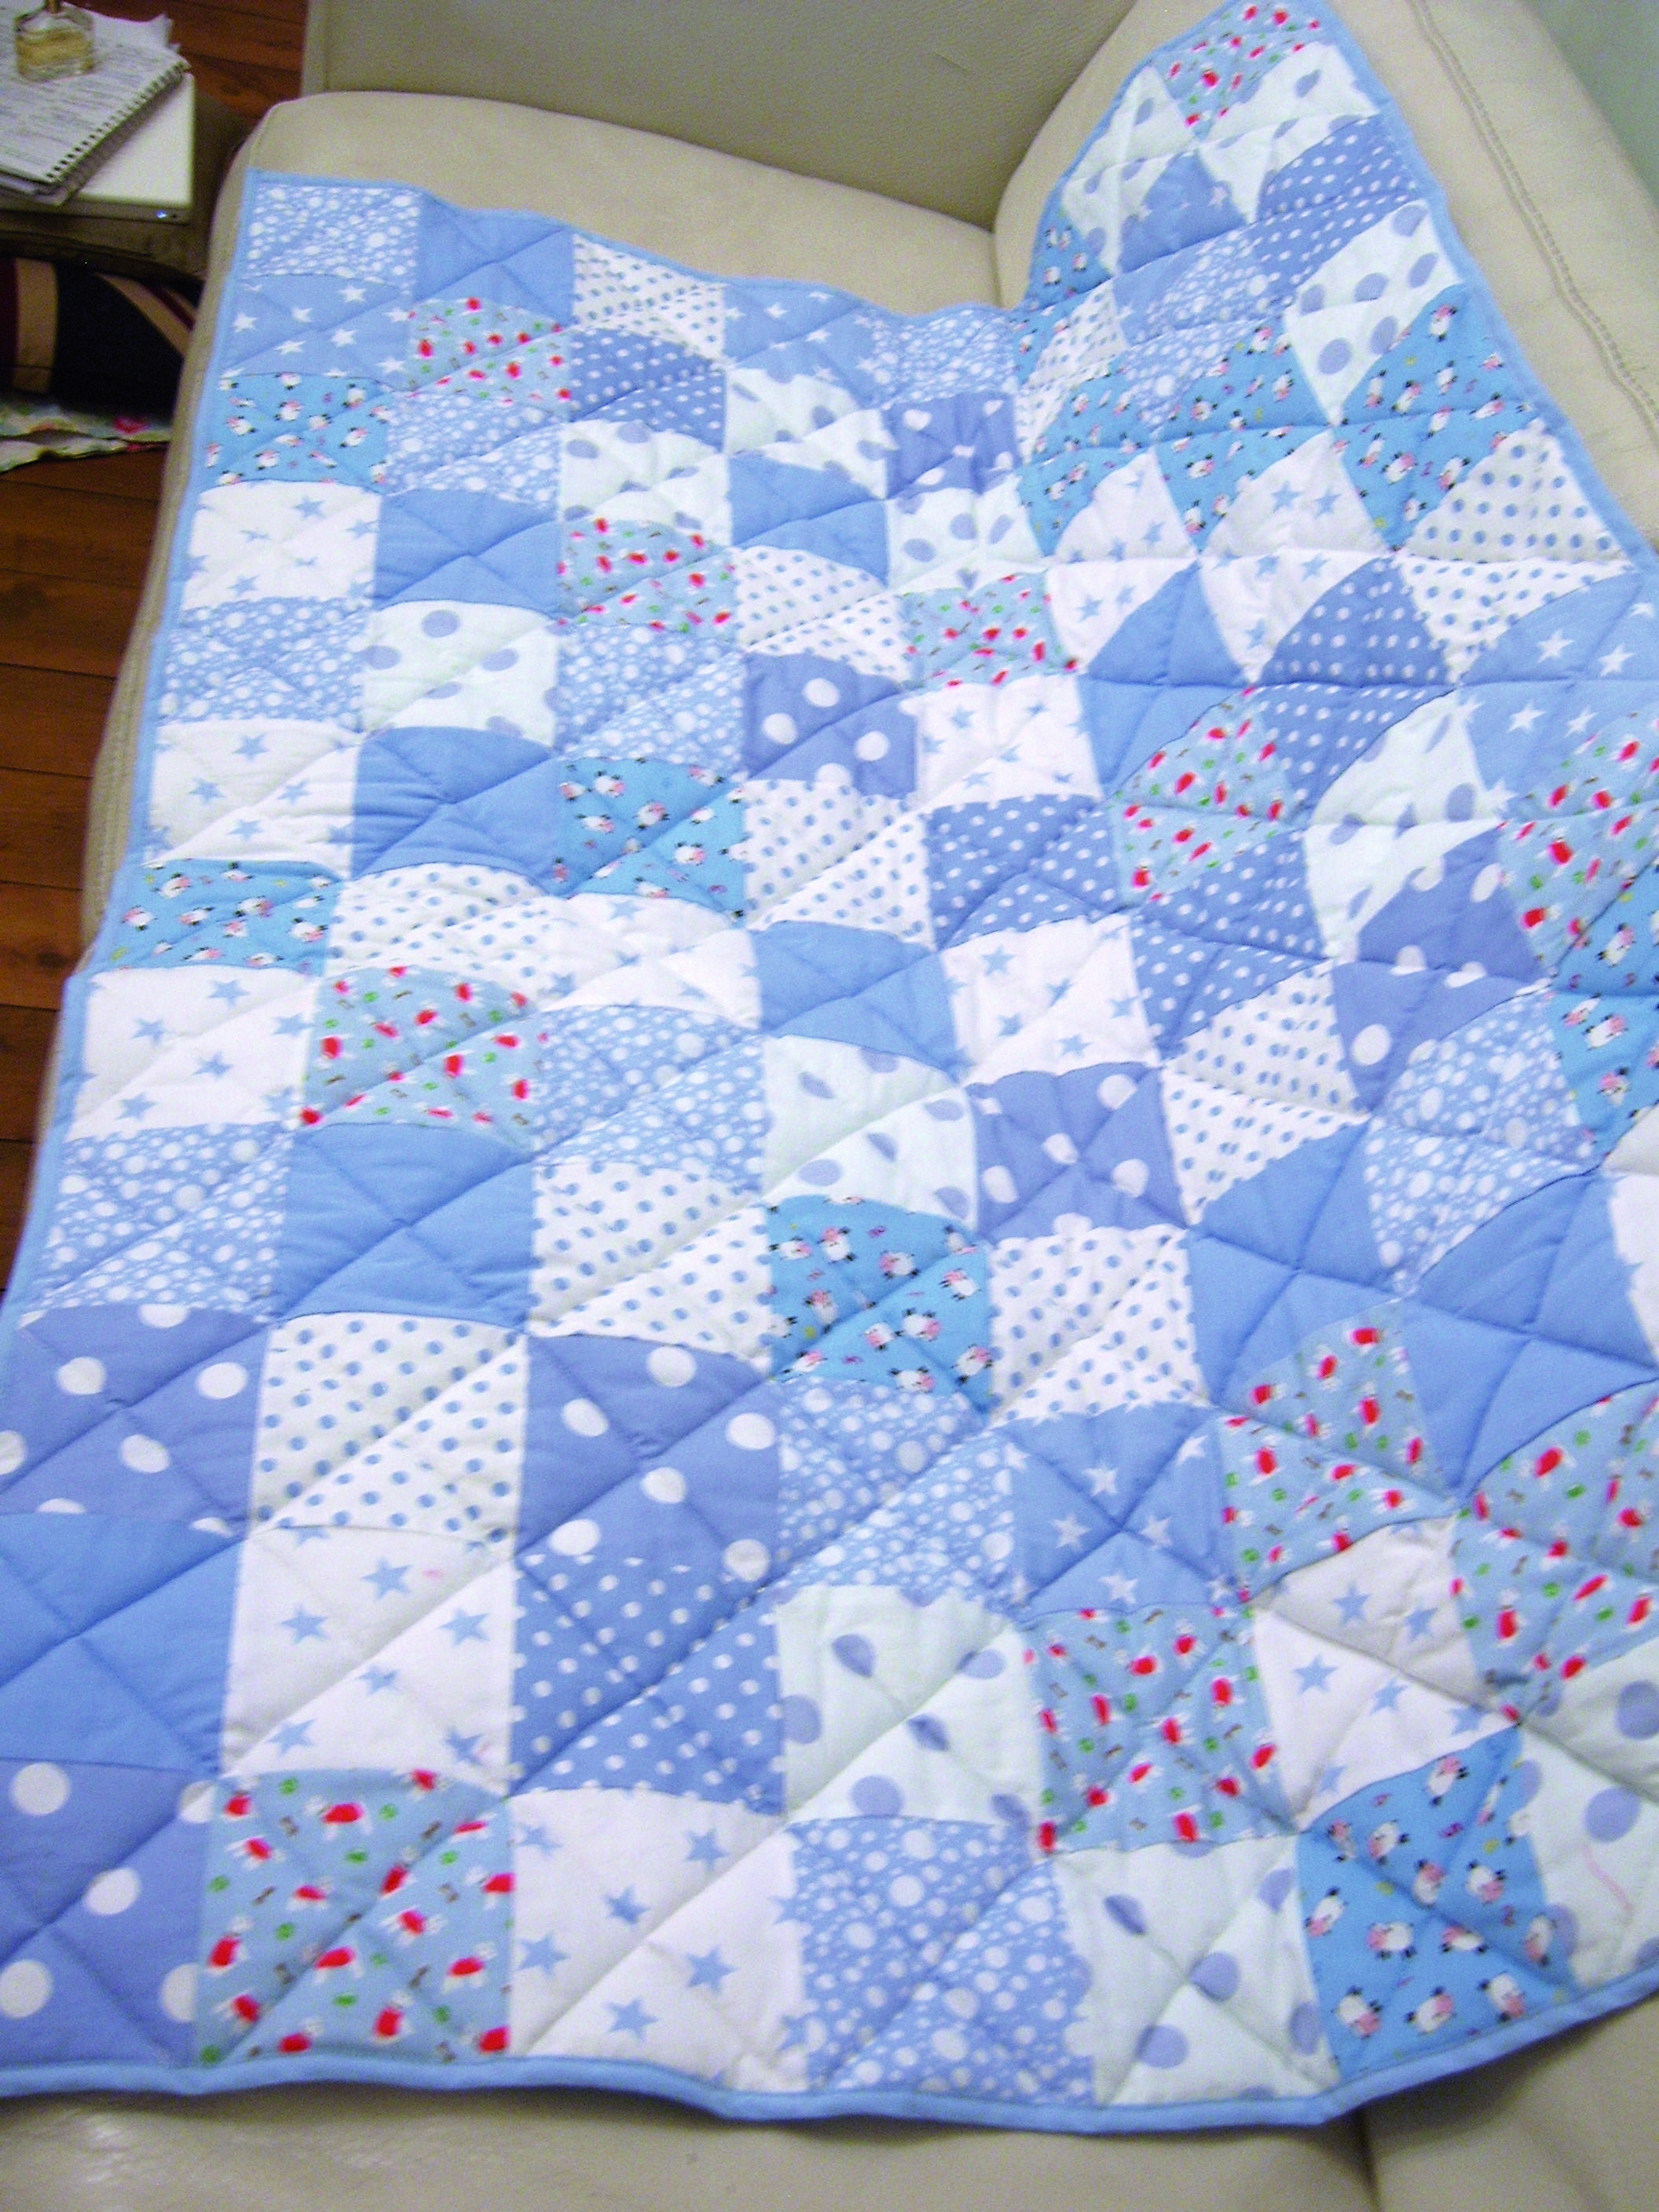 Patchwork quilt - detail (quilting is machine-stitched diagonal lines)